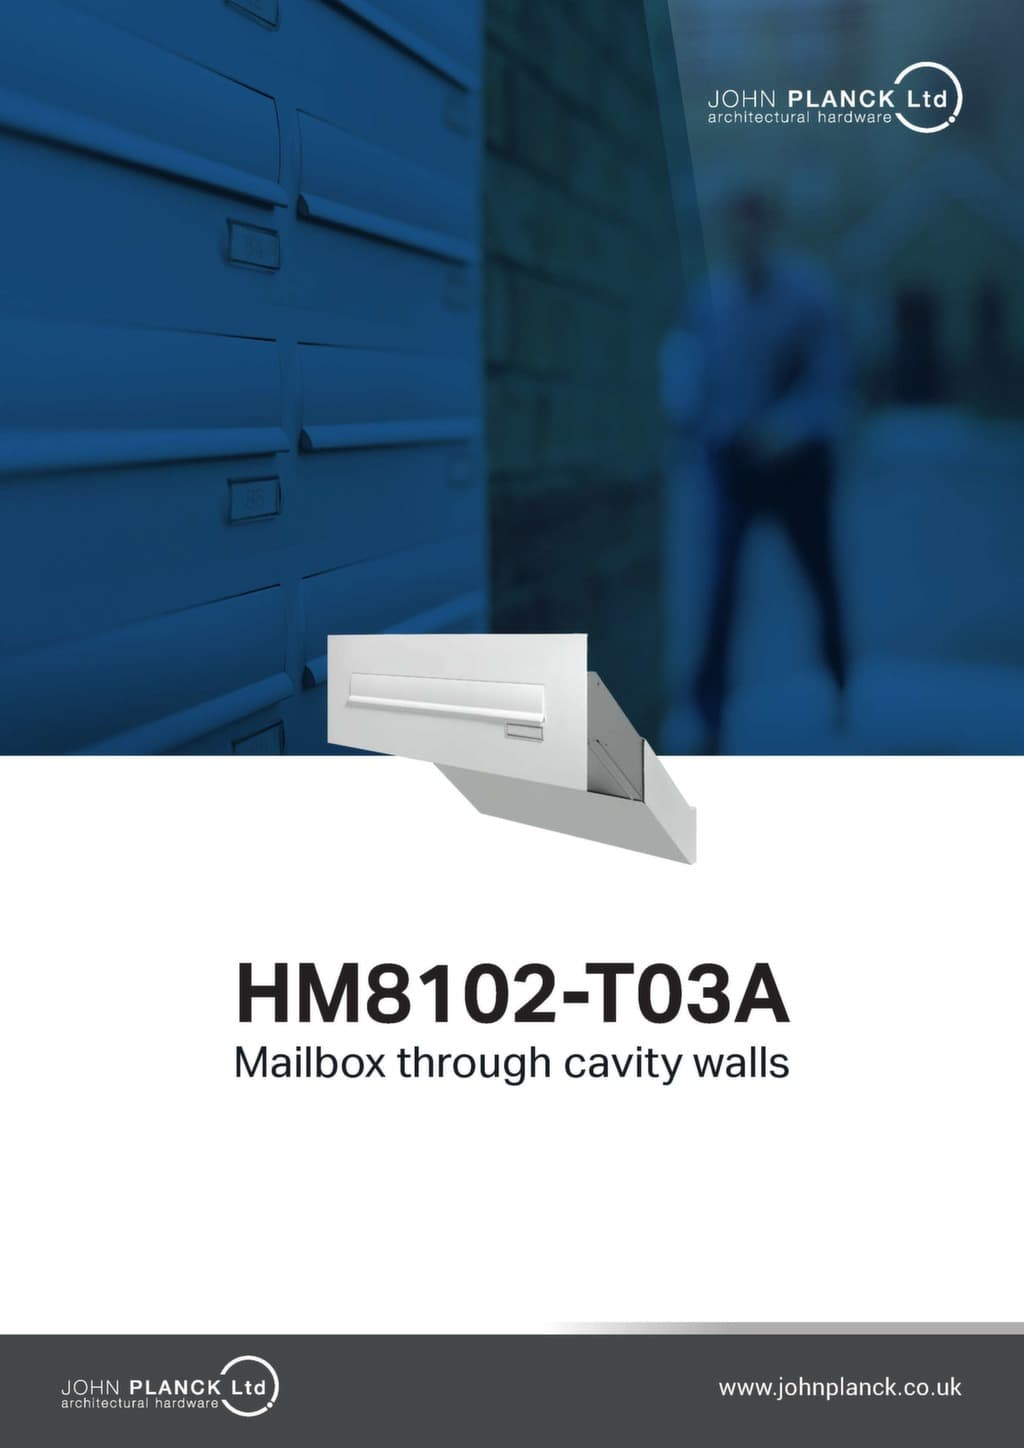 HM8102-T03A